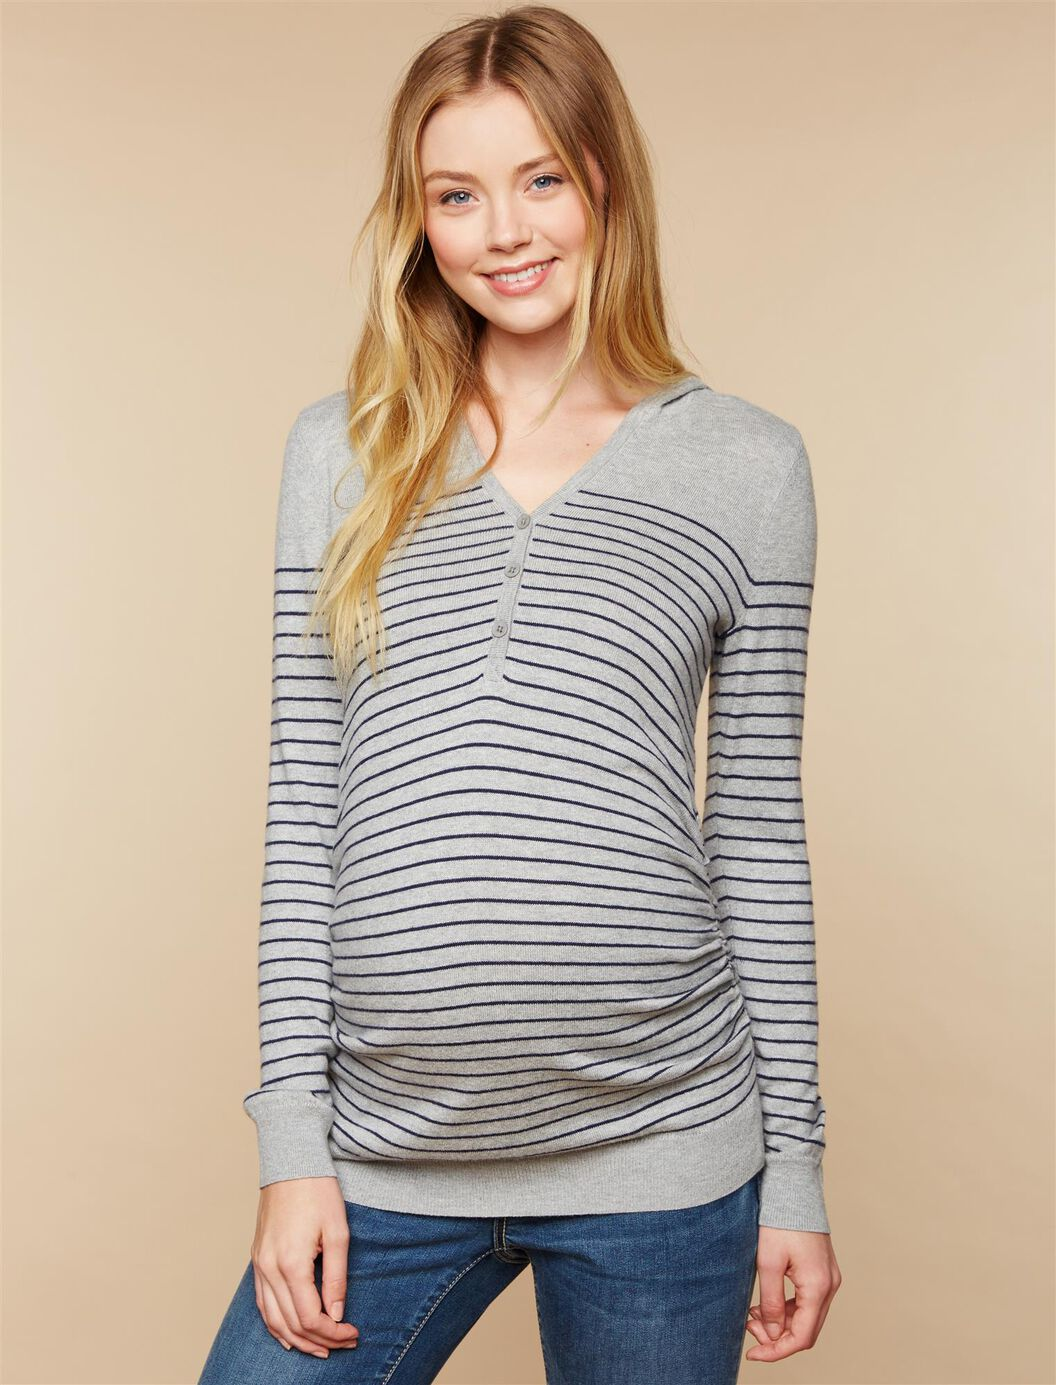 Hooded Maternity Sweater at Motherhood Maternity in Victor, NY | Tuggl